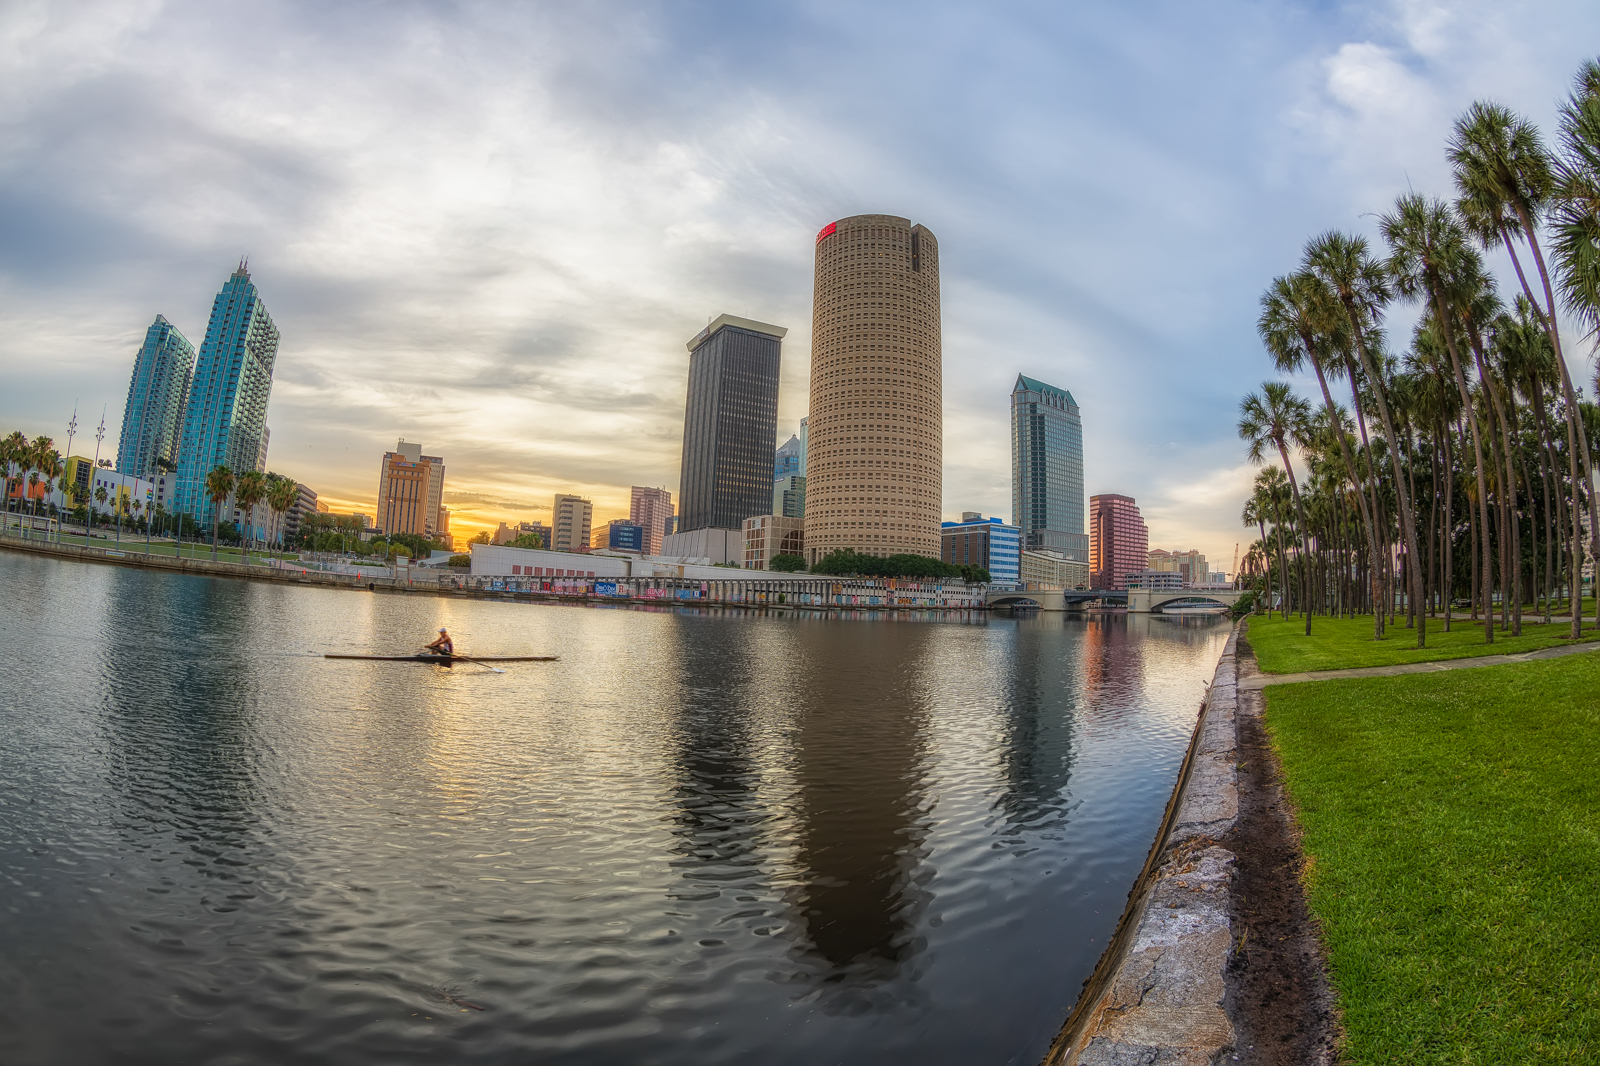 Single Scull along the Hillsborough River at Sunrise